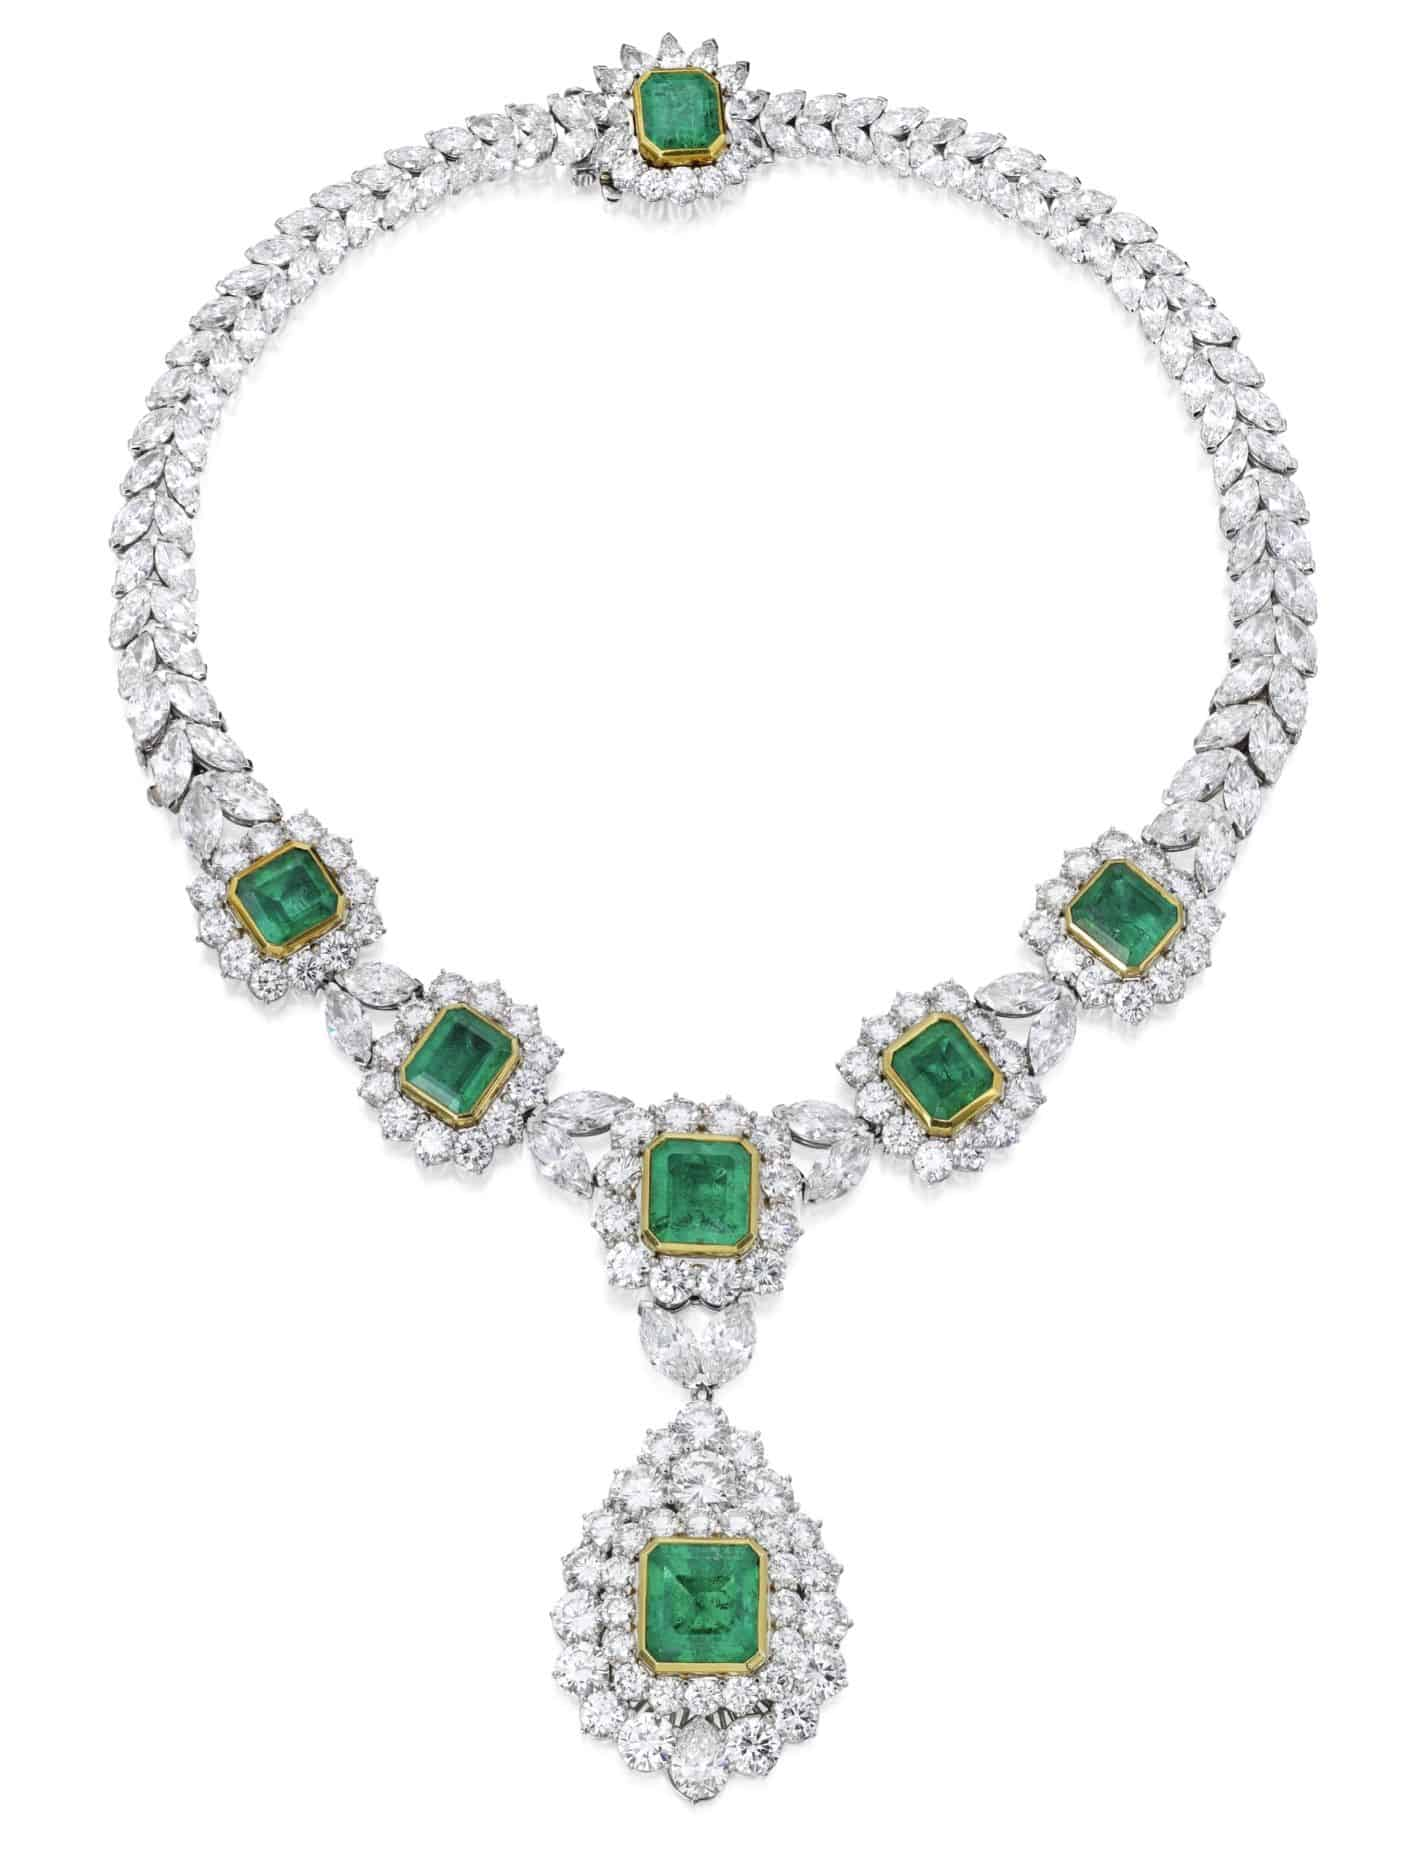 Lot 94 - Platinum, 18 Karat Gold, Emerald and Diamond Necklace, Greenleaf & Crosby